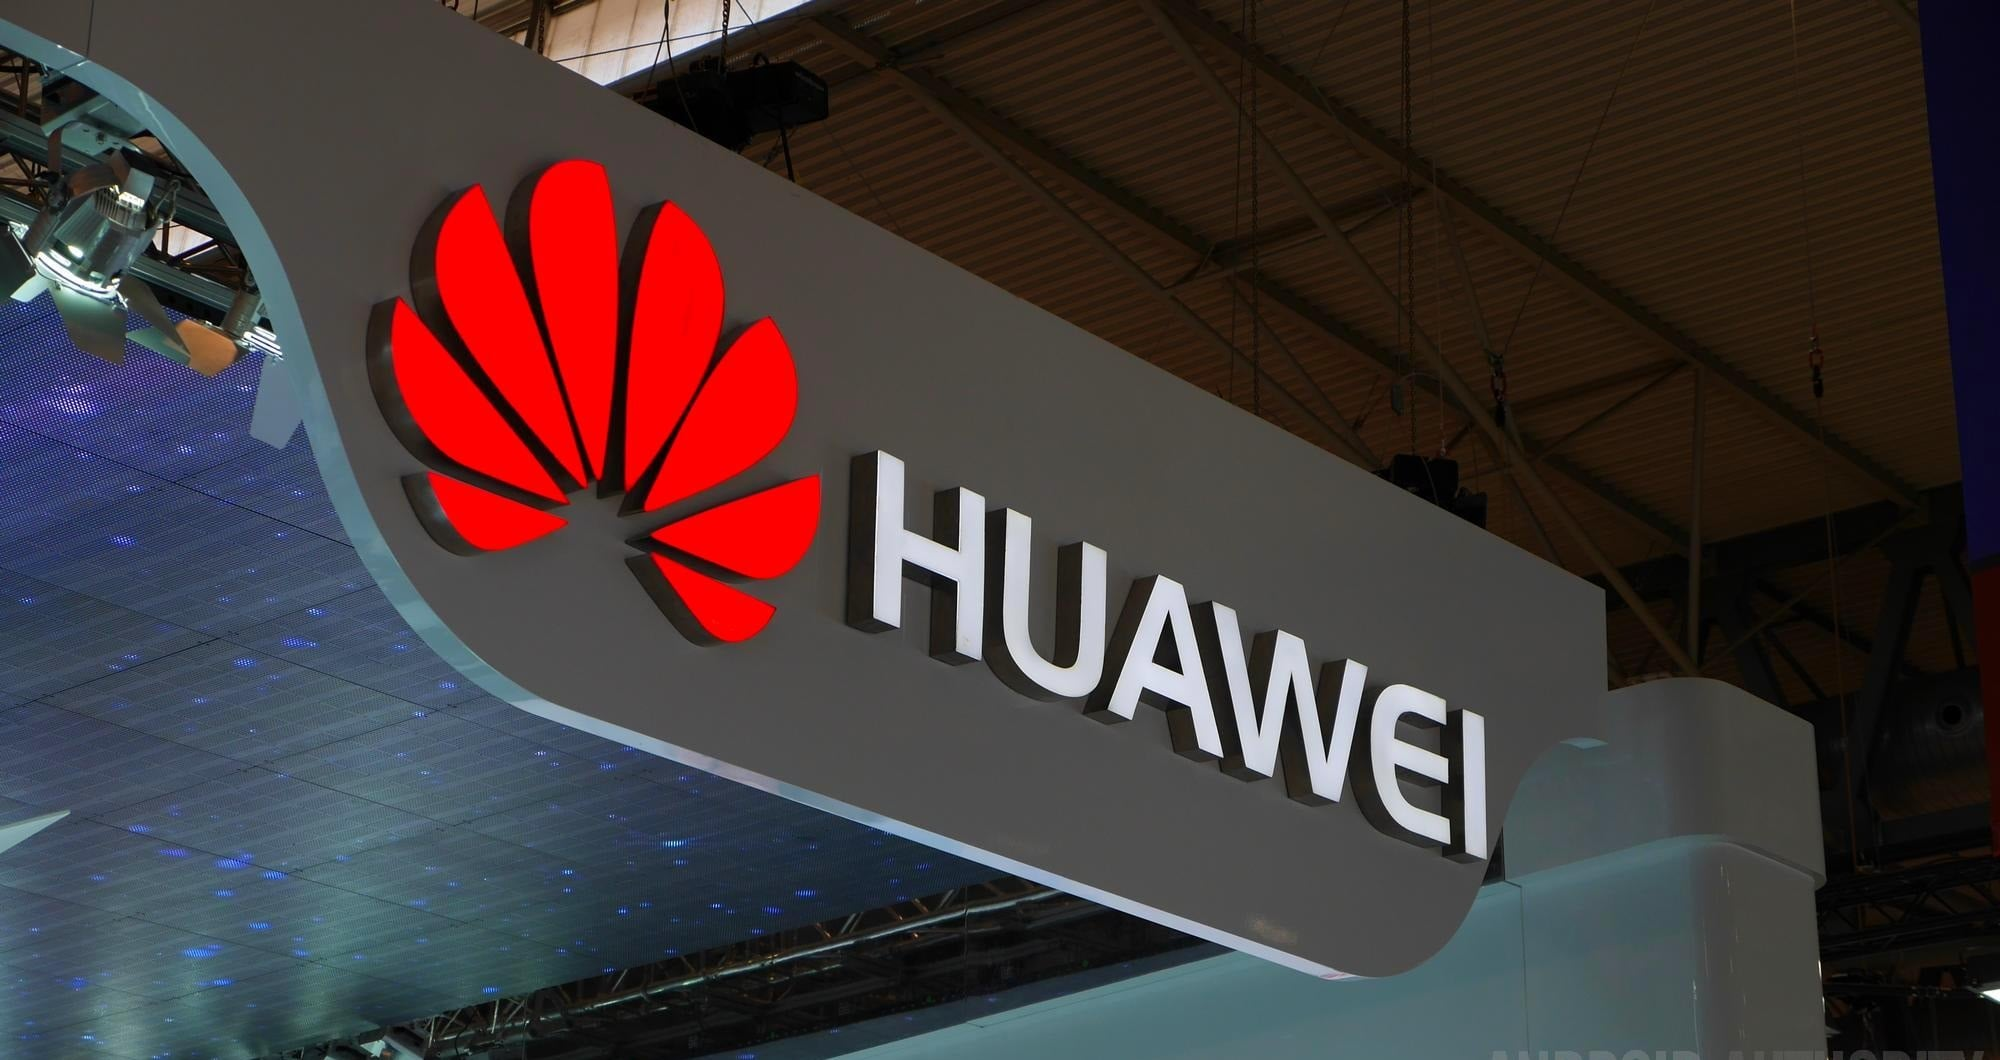 Huawei will Shine four day event named The BNU Bestival 2016